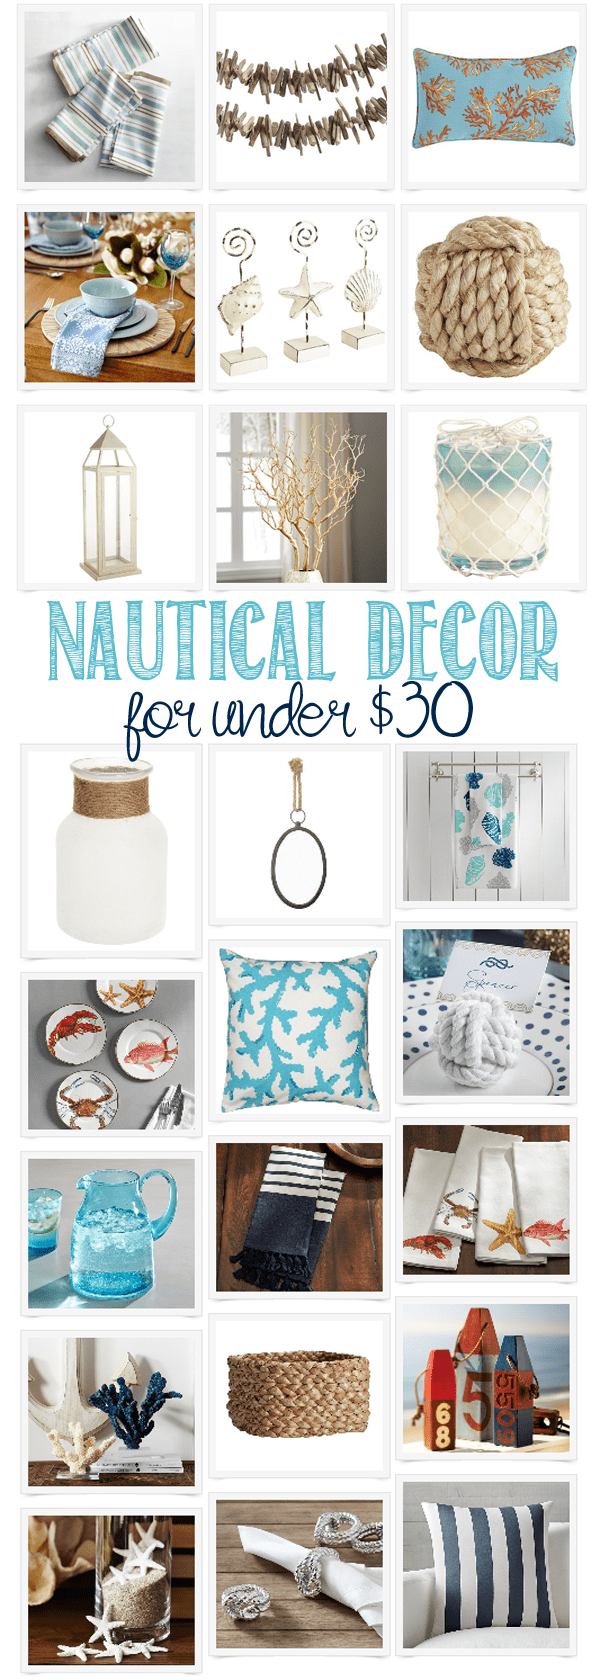 Nautical Decor for under $30 - great beachy decor items for your home to add some coastal vibe